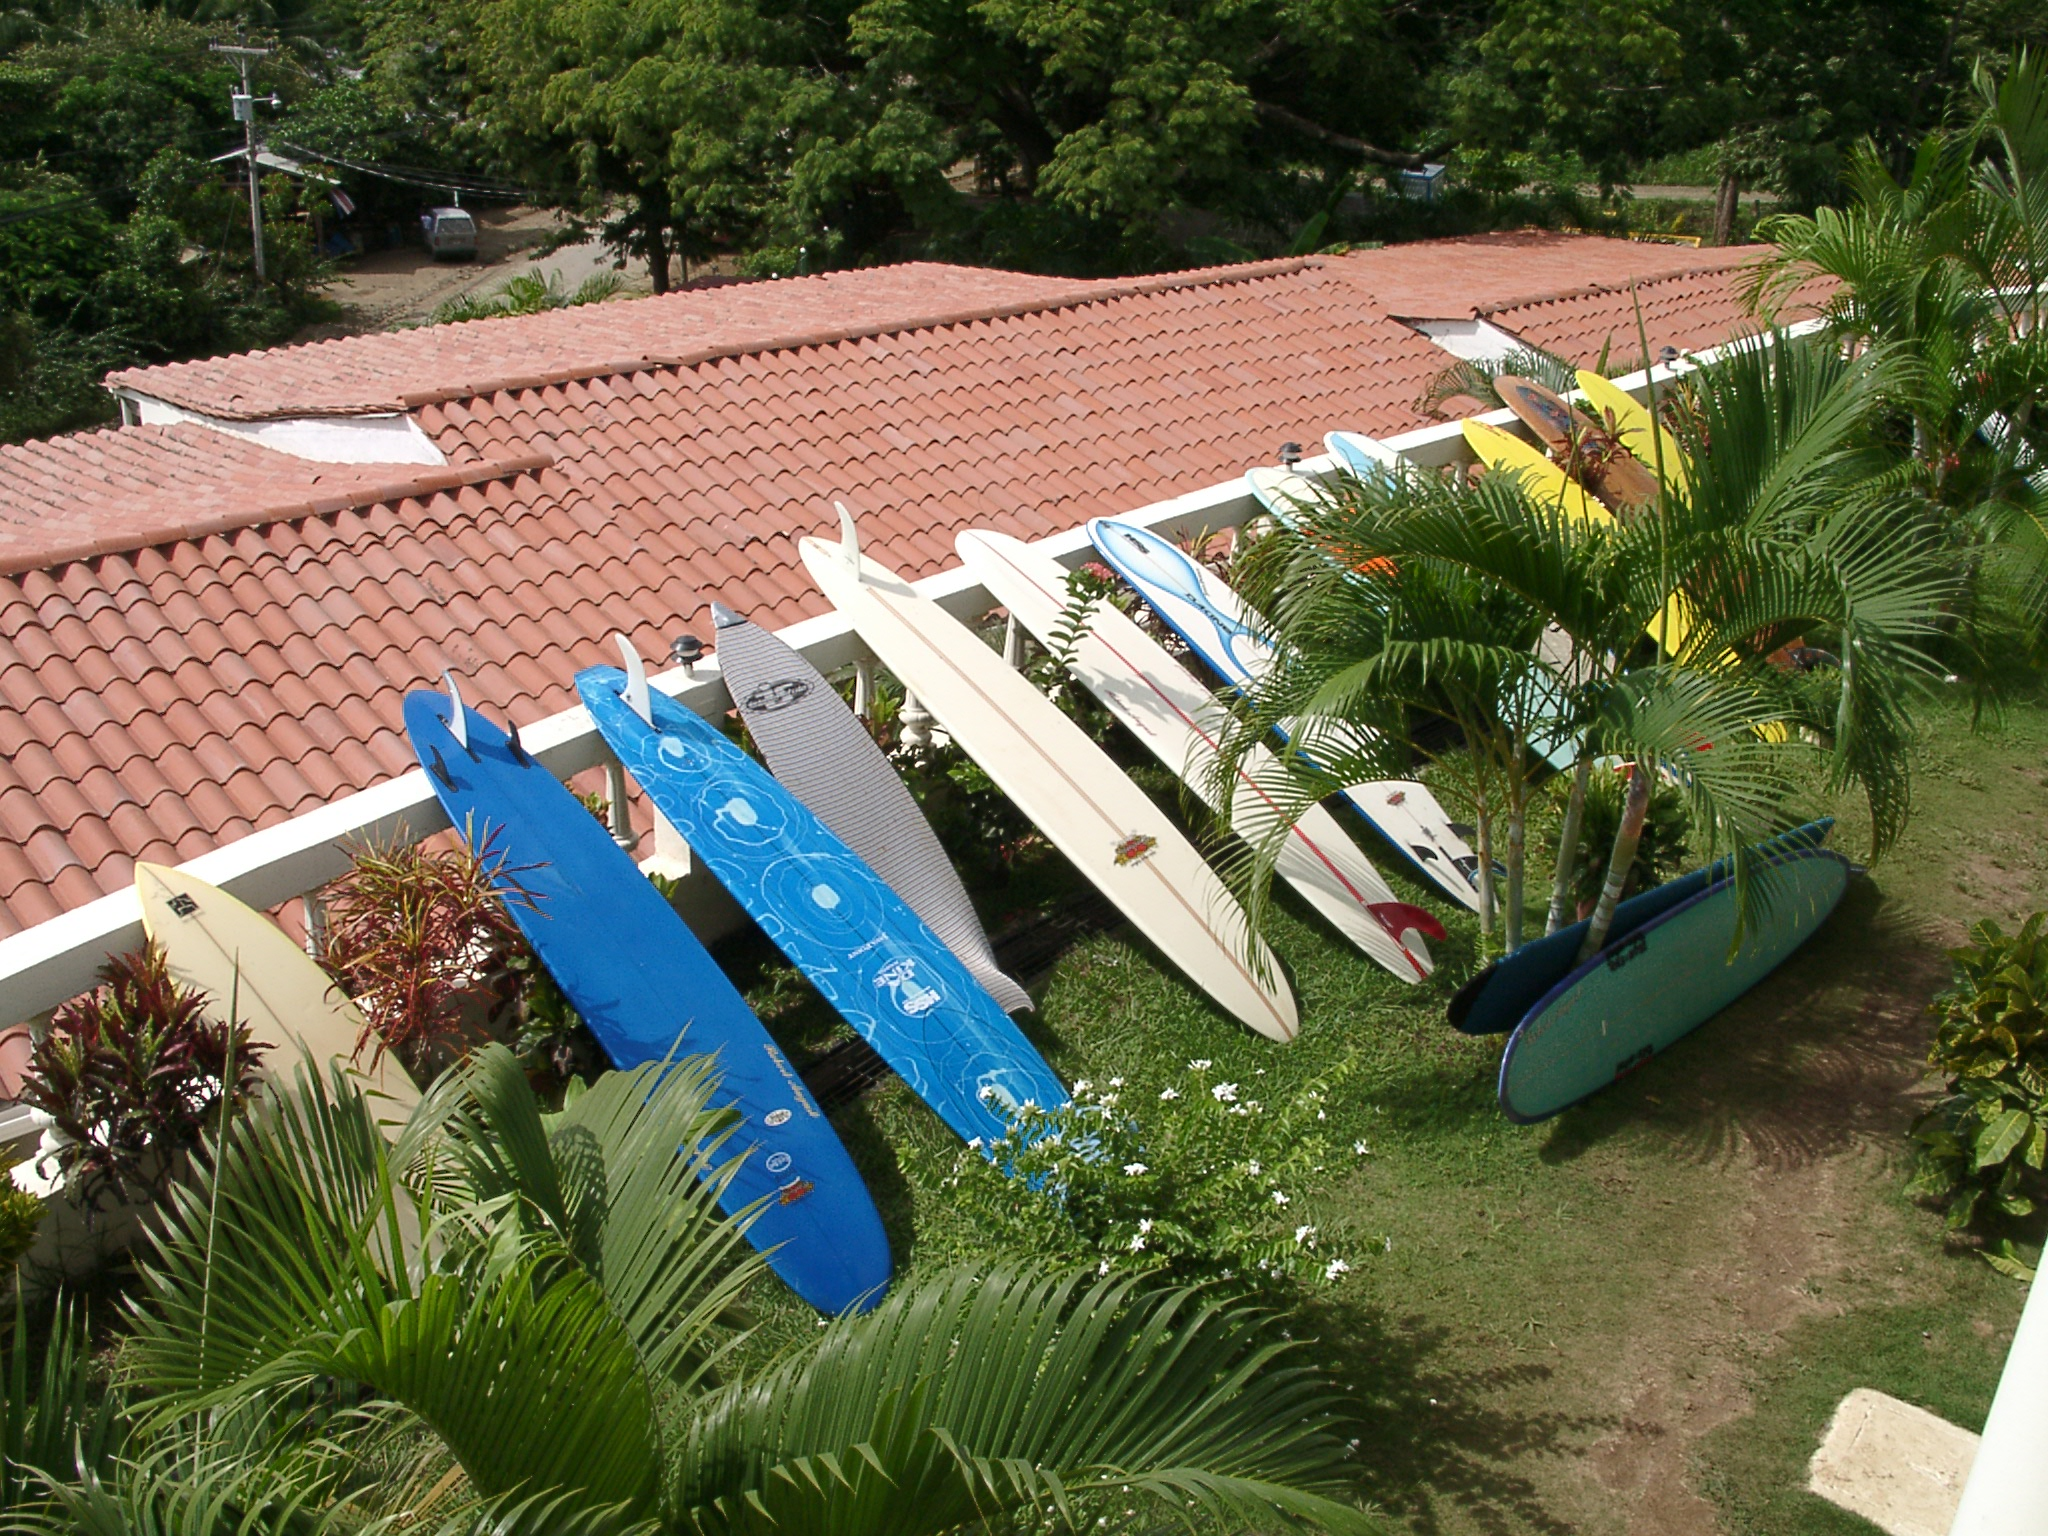 Just a few of the surfboards you can use while learning to surf in Tamarindo.